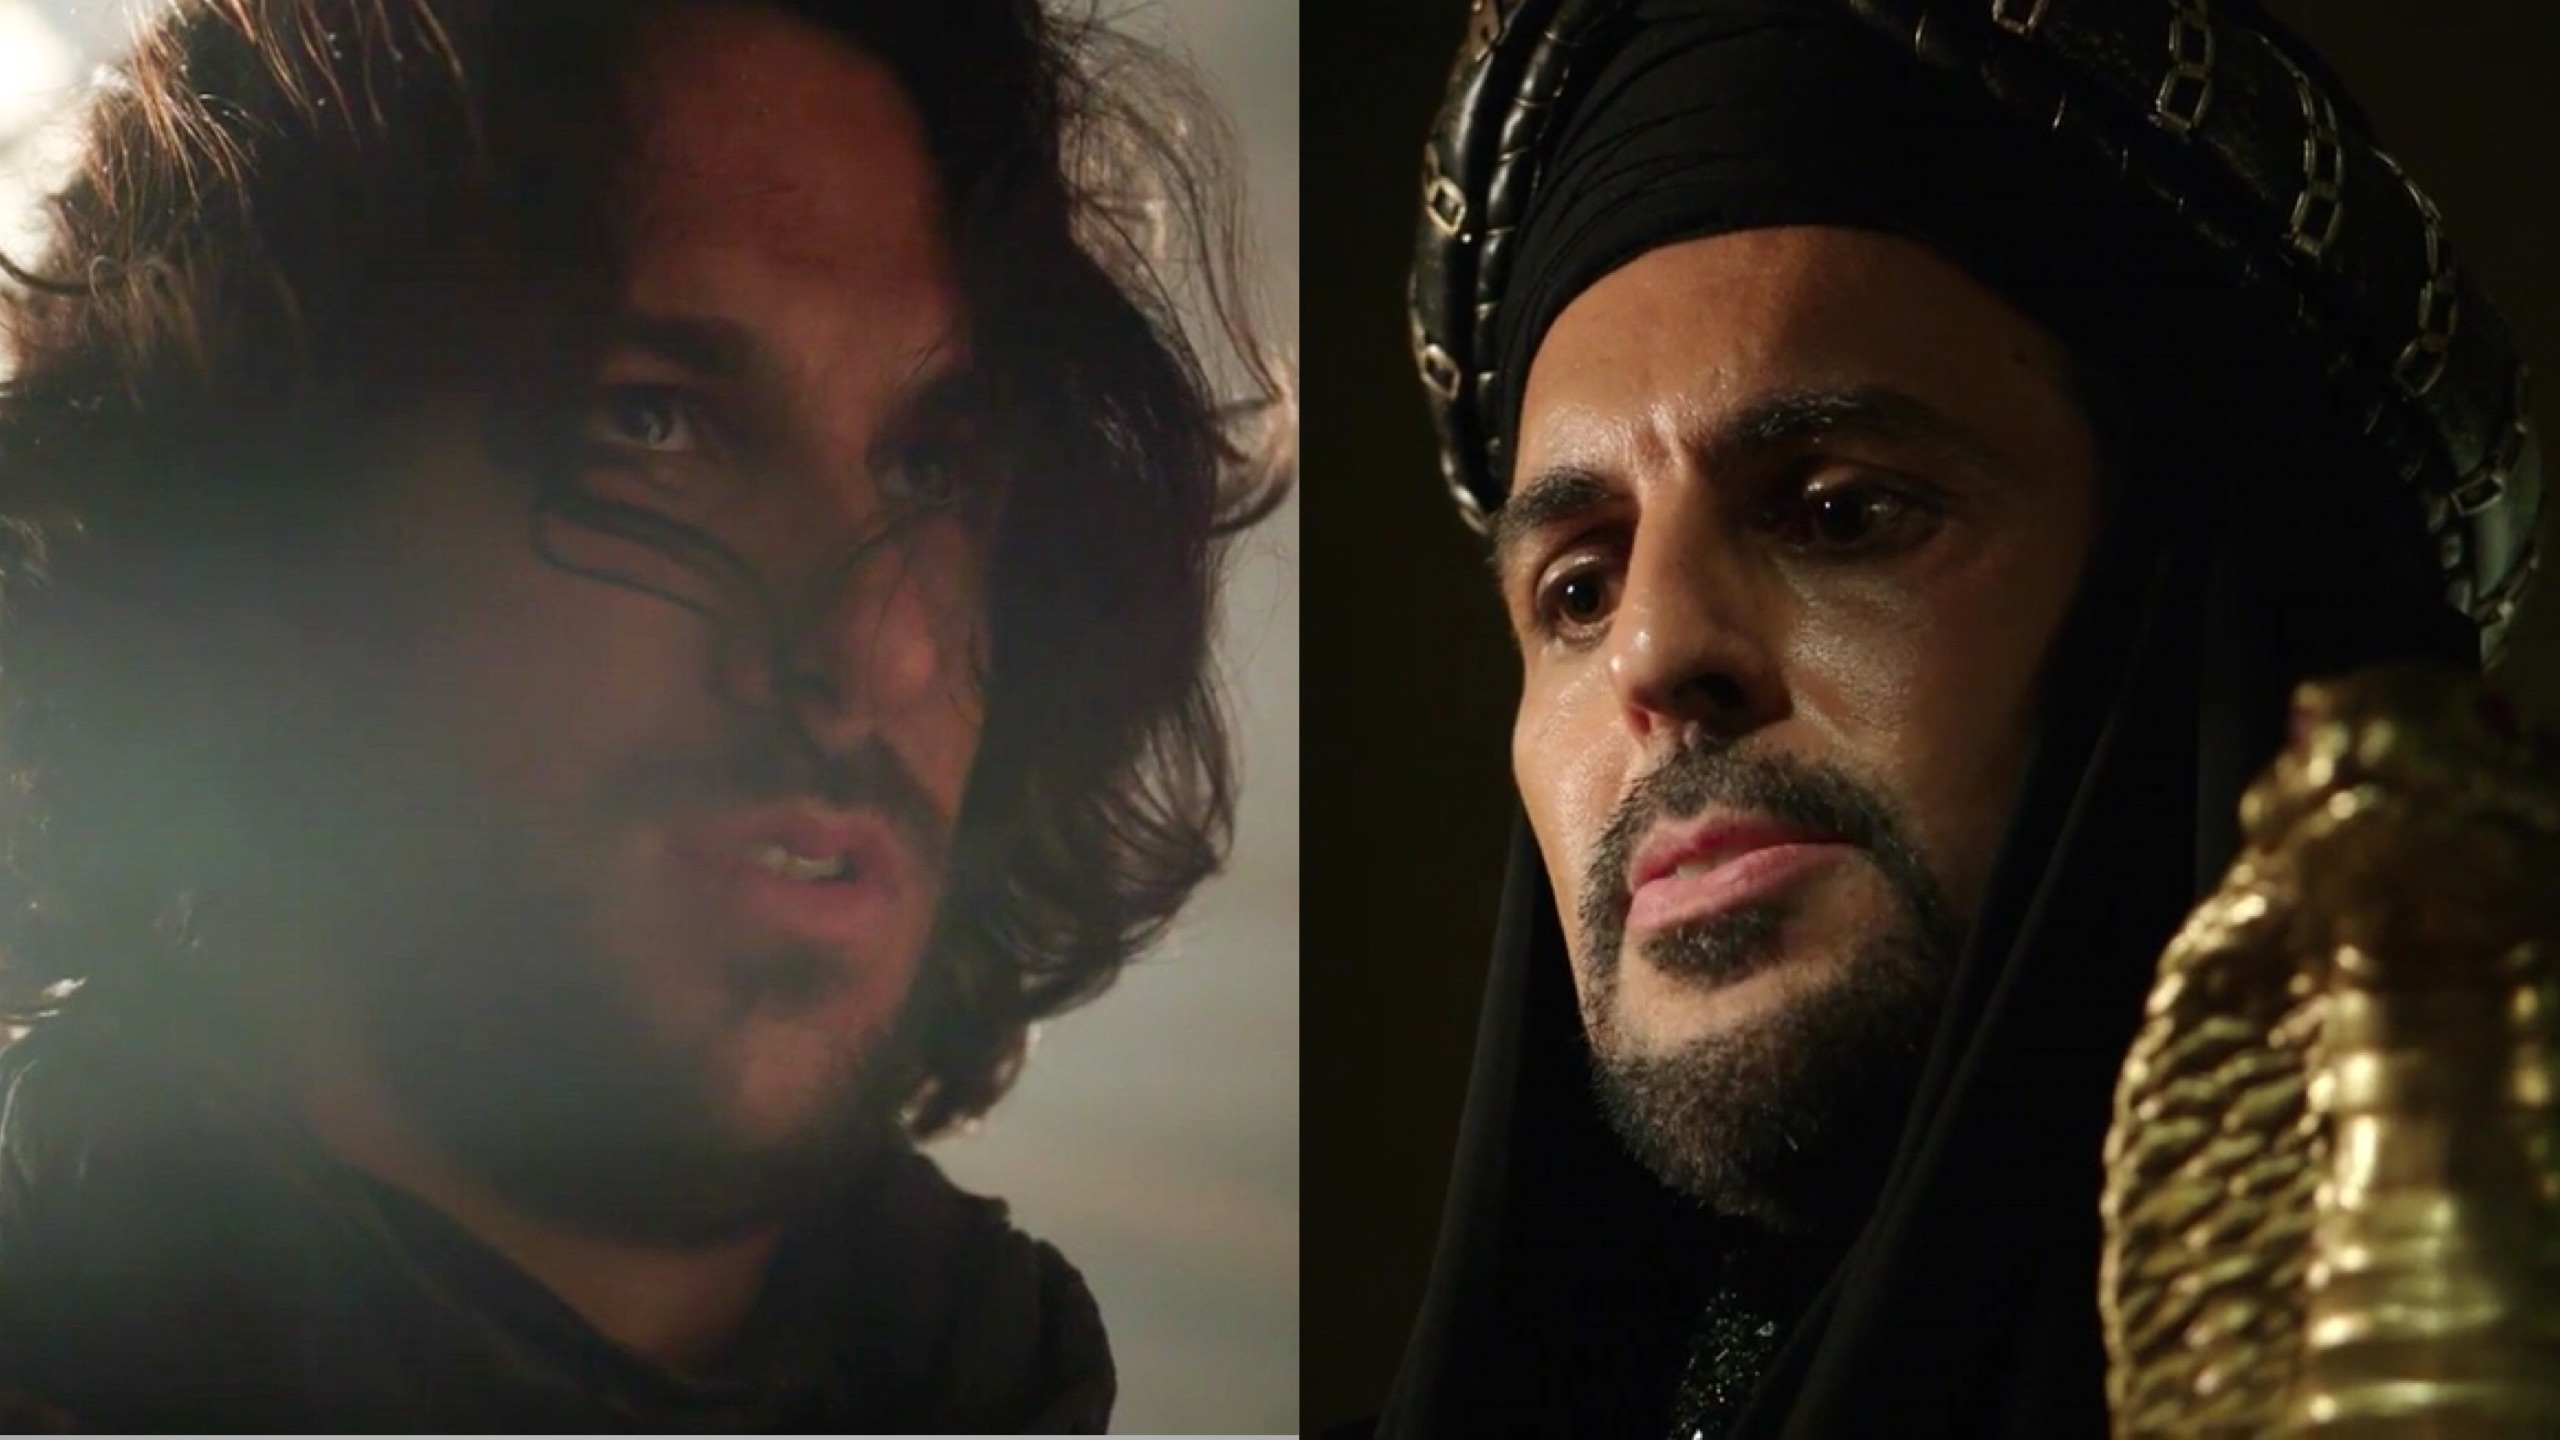 WATCH: 'Once Upon A Time' season 6 features Aladdin, Jafar ...